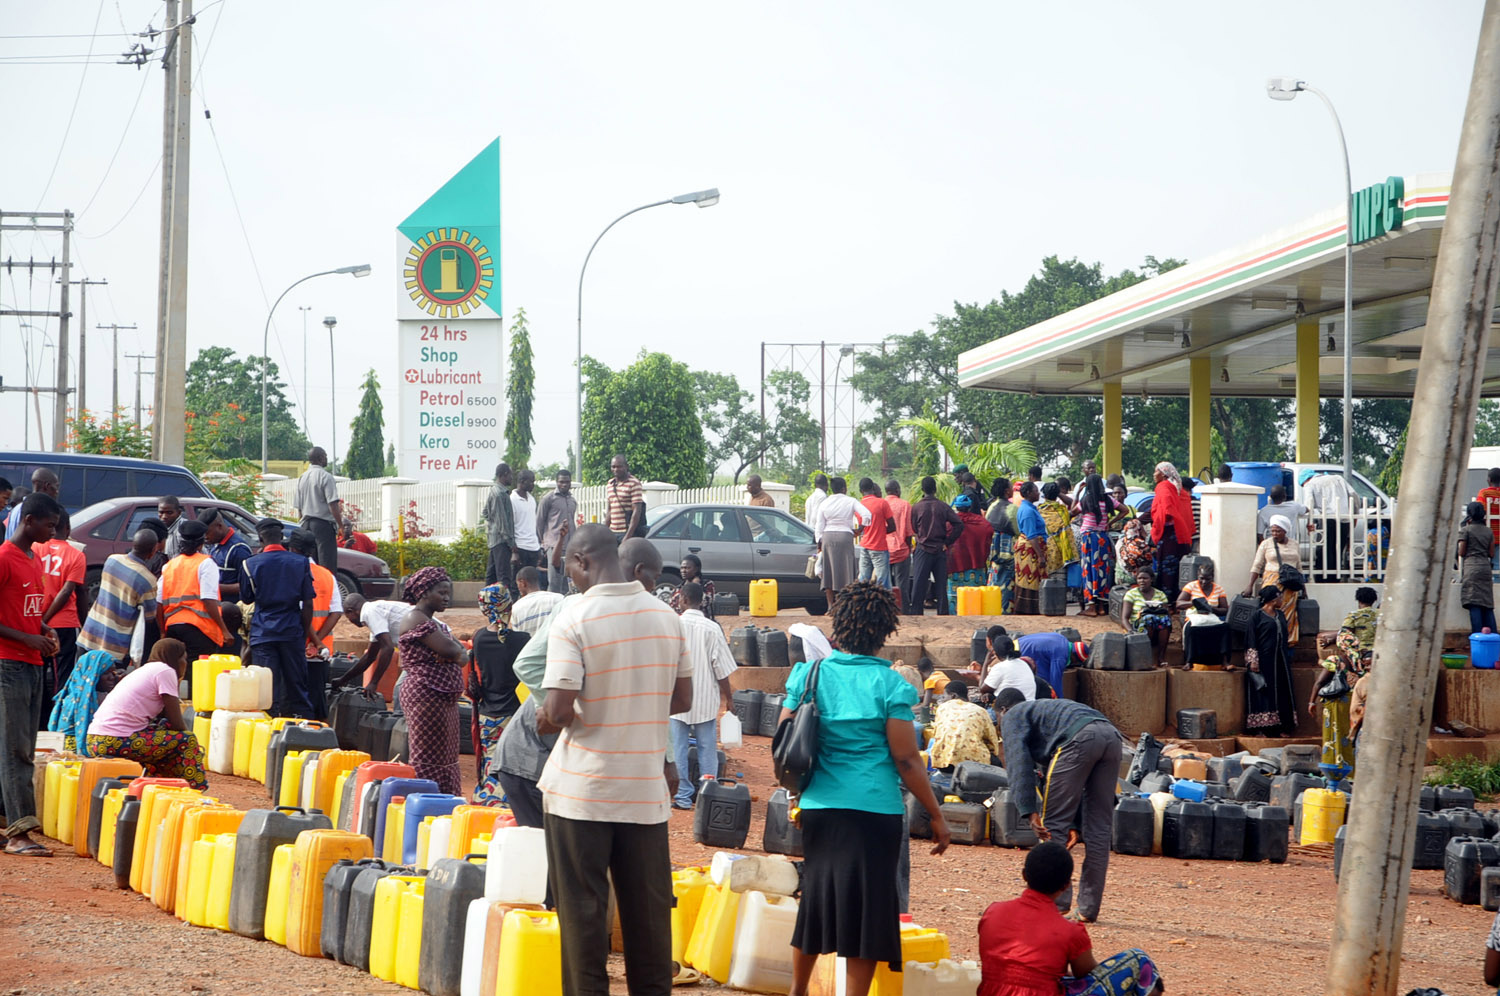 petrol subsidies in nigeria Zainab usman tells us why buhari must phase out nigeria's petrol subsidy zainab is a doctoral candidate in international development at the university of in nigeria, the insidious dependency on fuel subsidies is even more widespread not only are they favoured by an increasingly empowered.